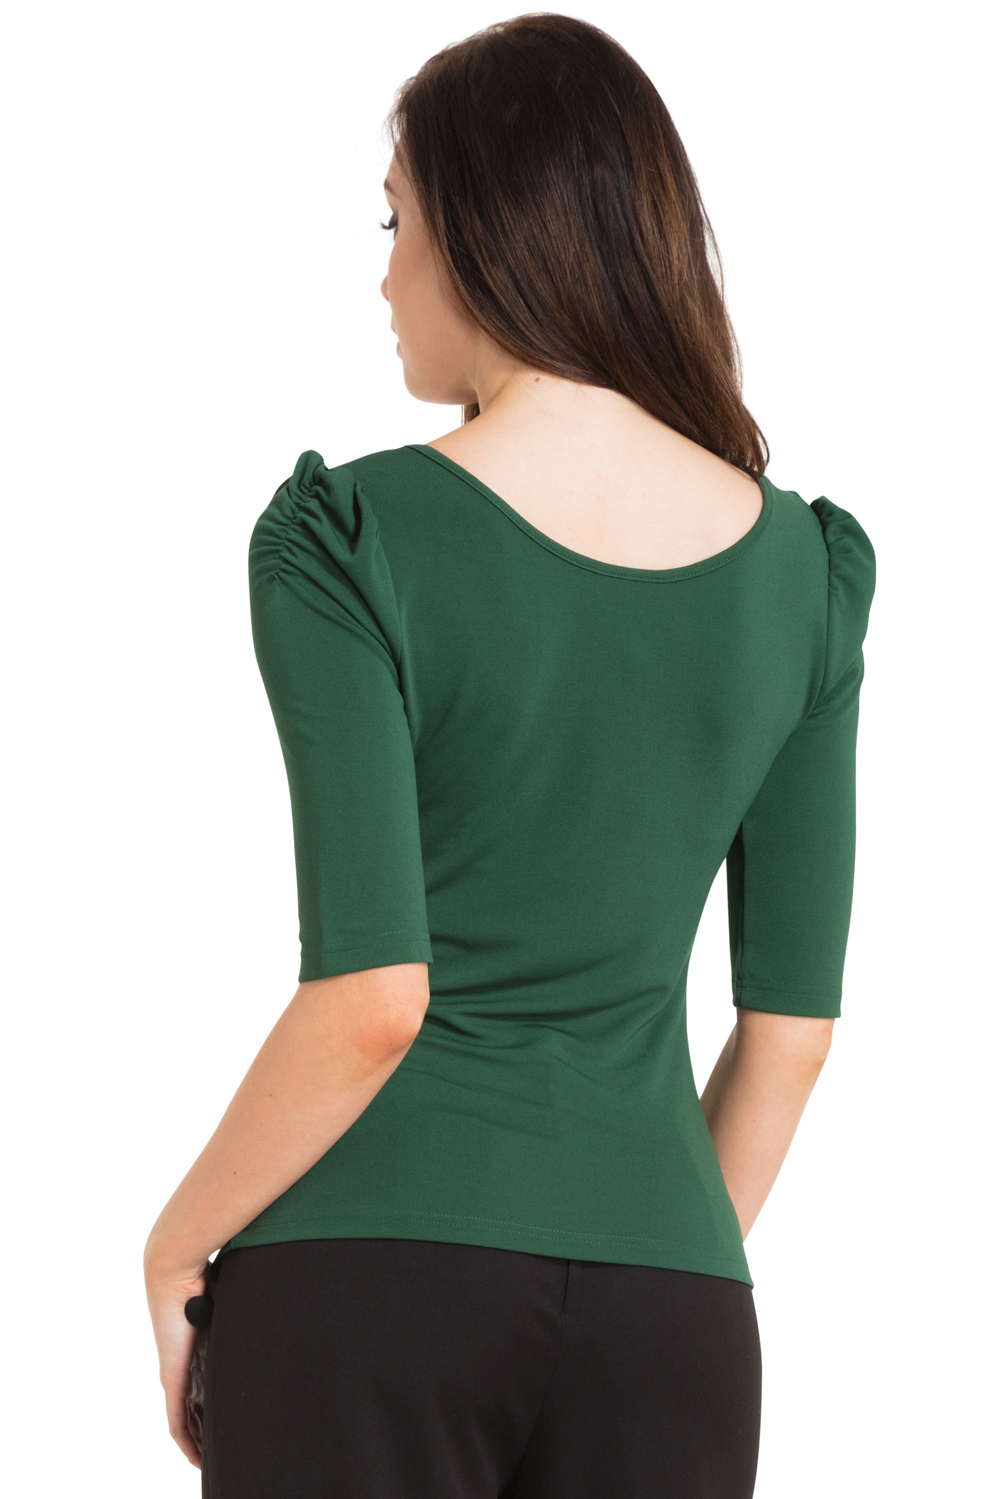 Von Teese Top Green